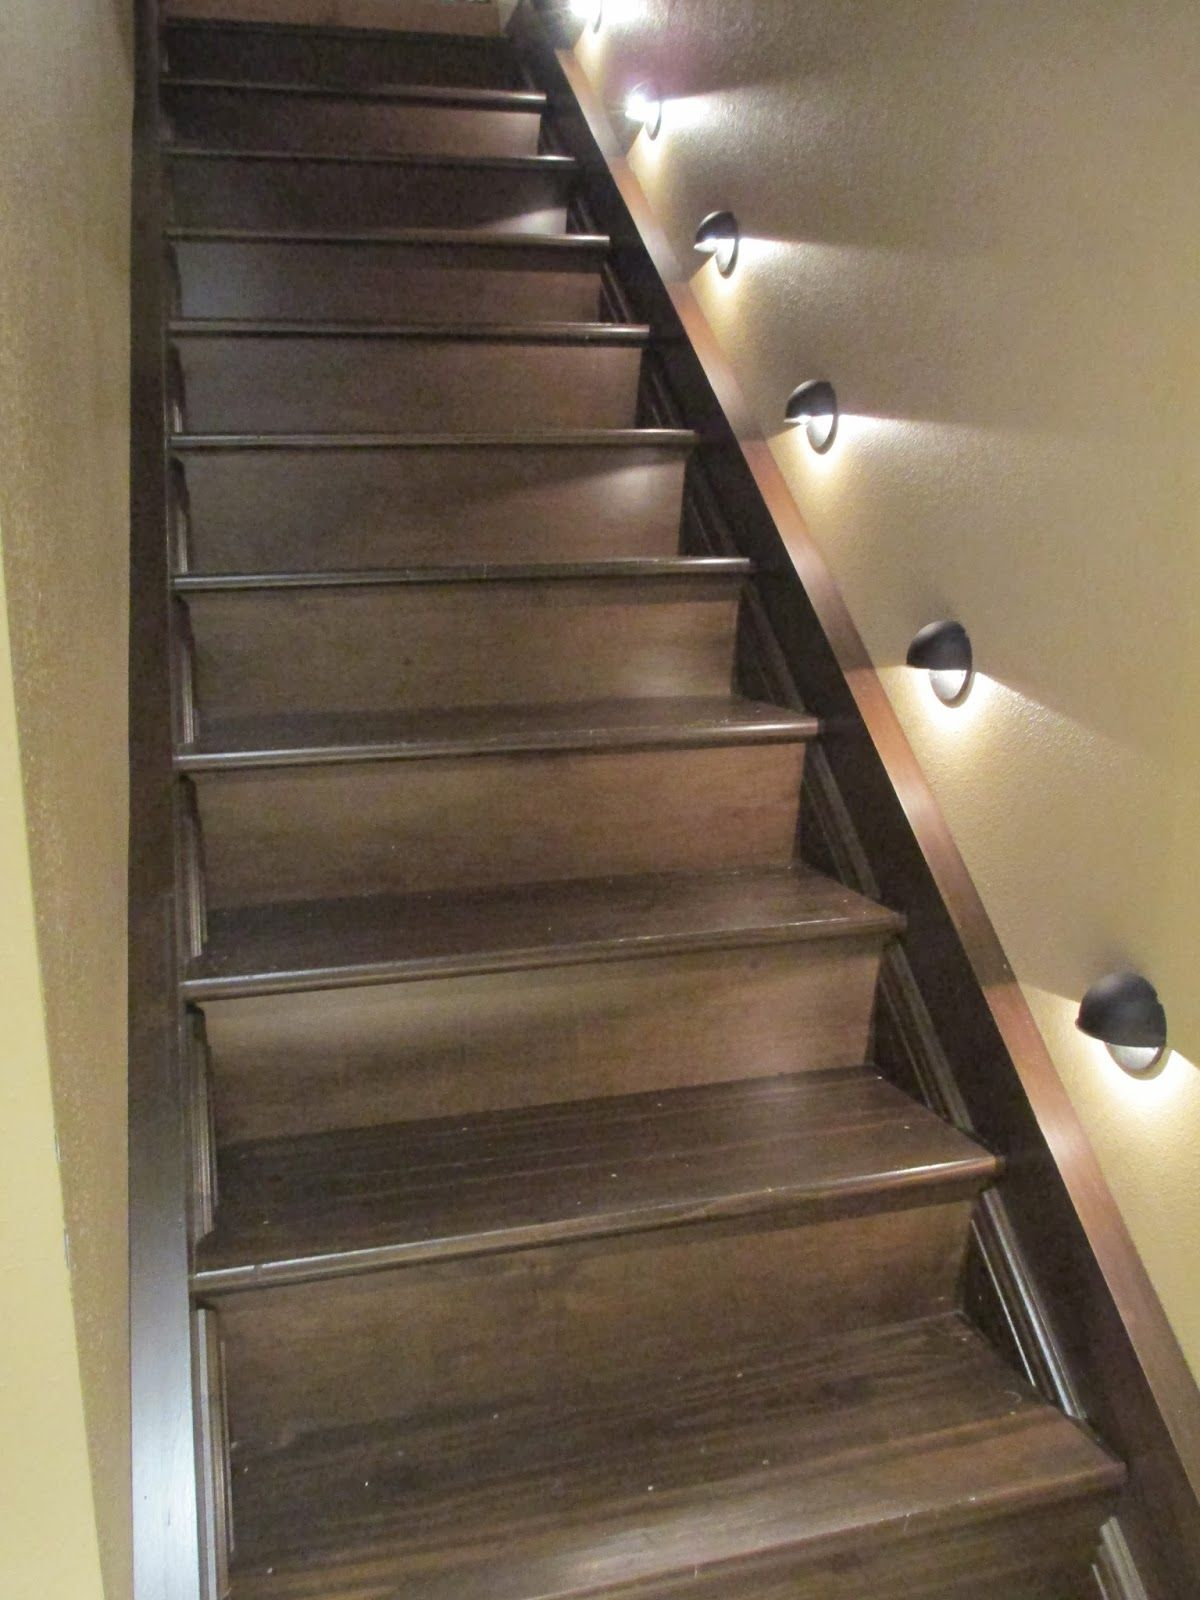 Refinishing Basement Stairs Check Out Fake Stone Columns In Basement Earlier Than And